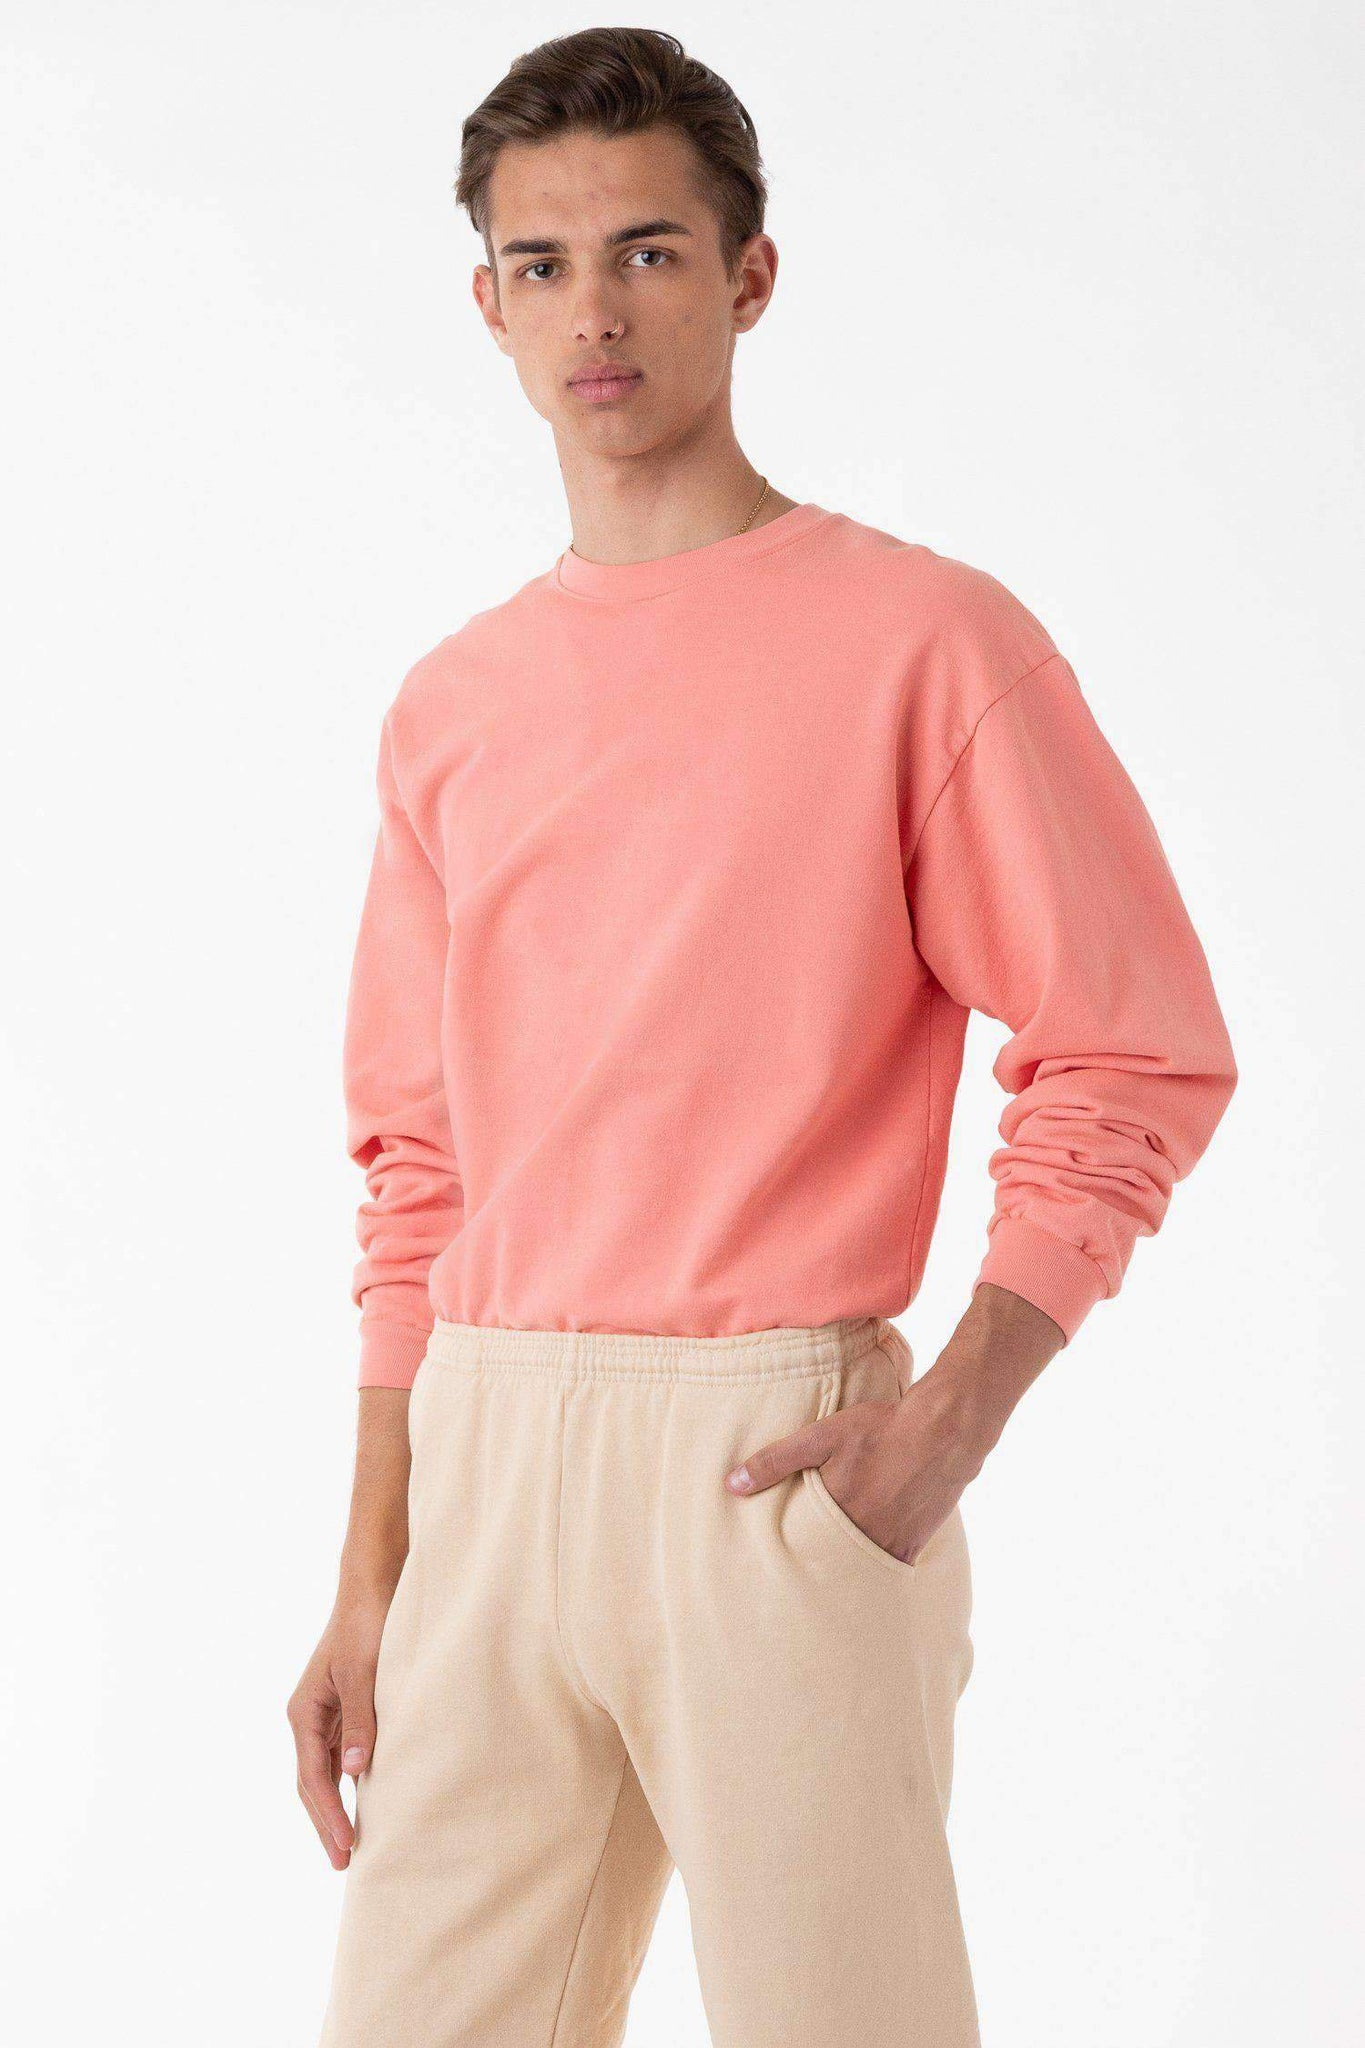 MWT07GD - Long Sleeve Garment Dye French Terry Pullover Sweatshirt Los Angeles Apparel Salmon XS